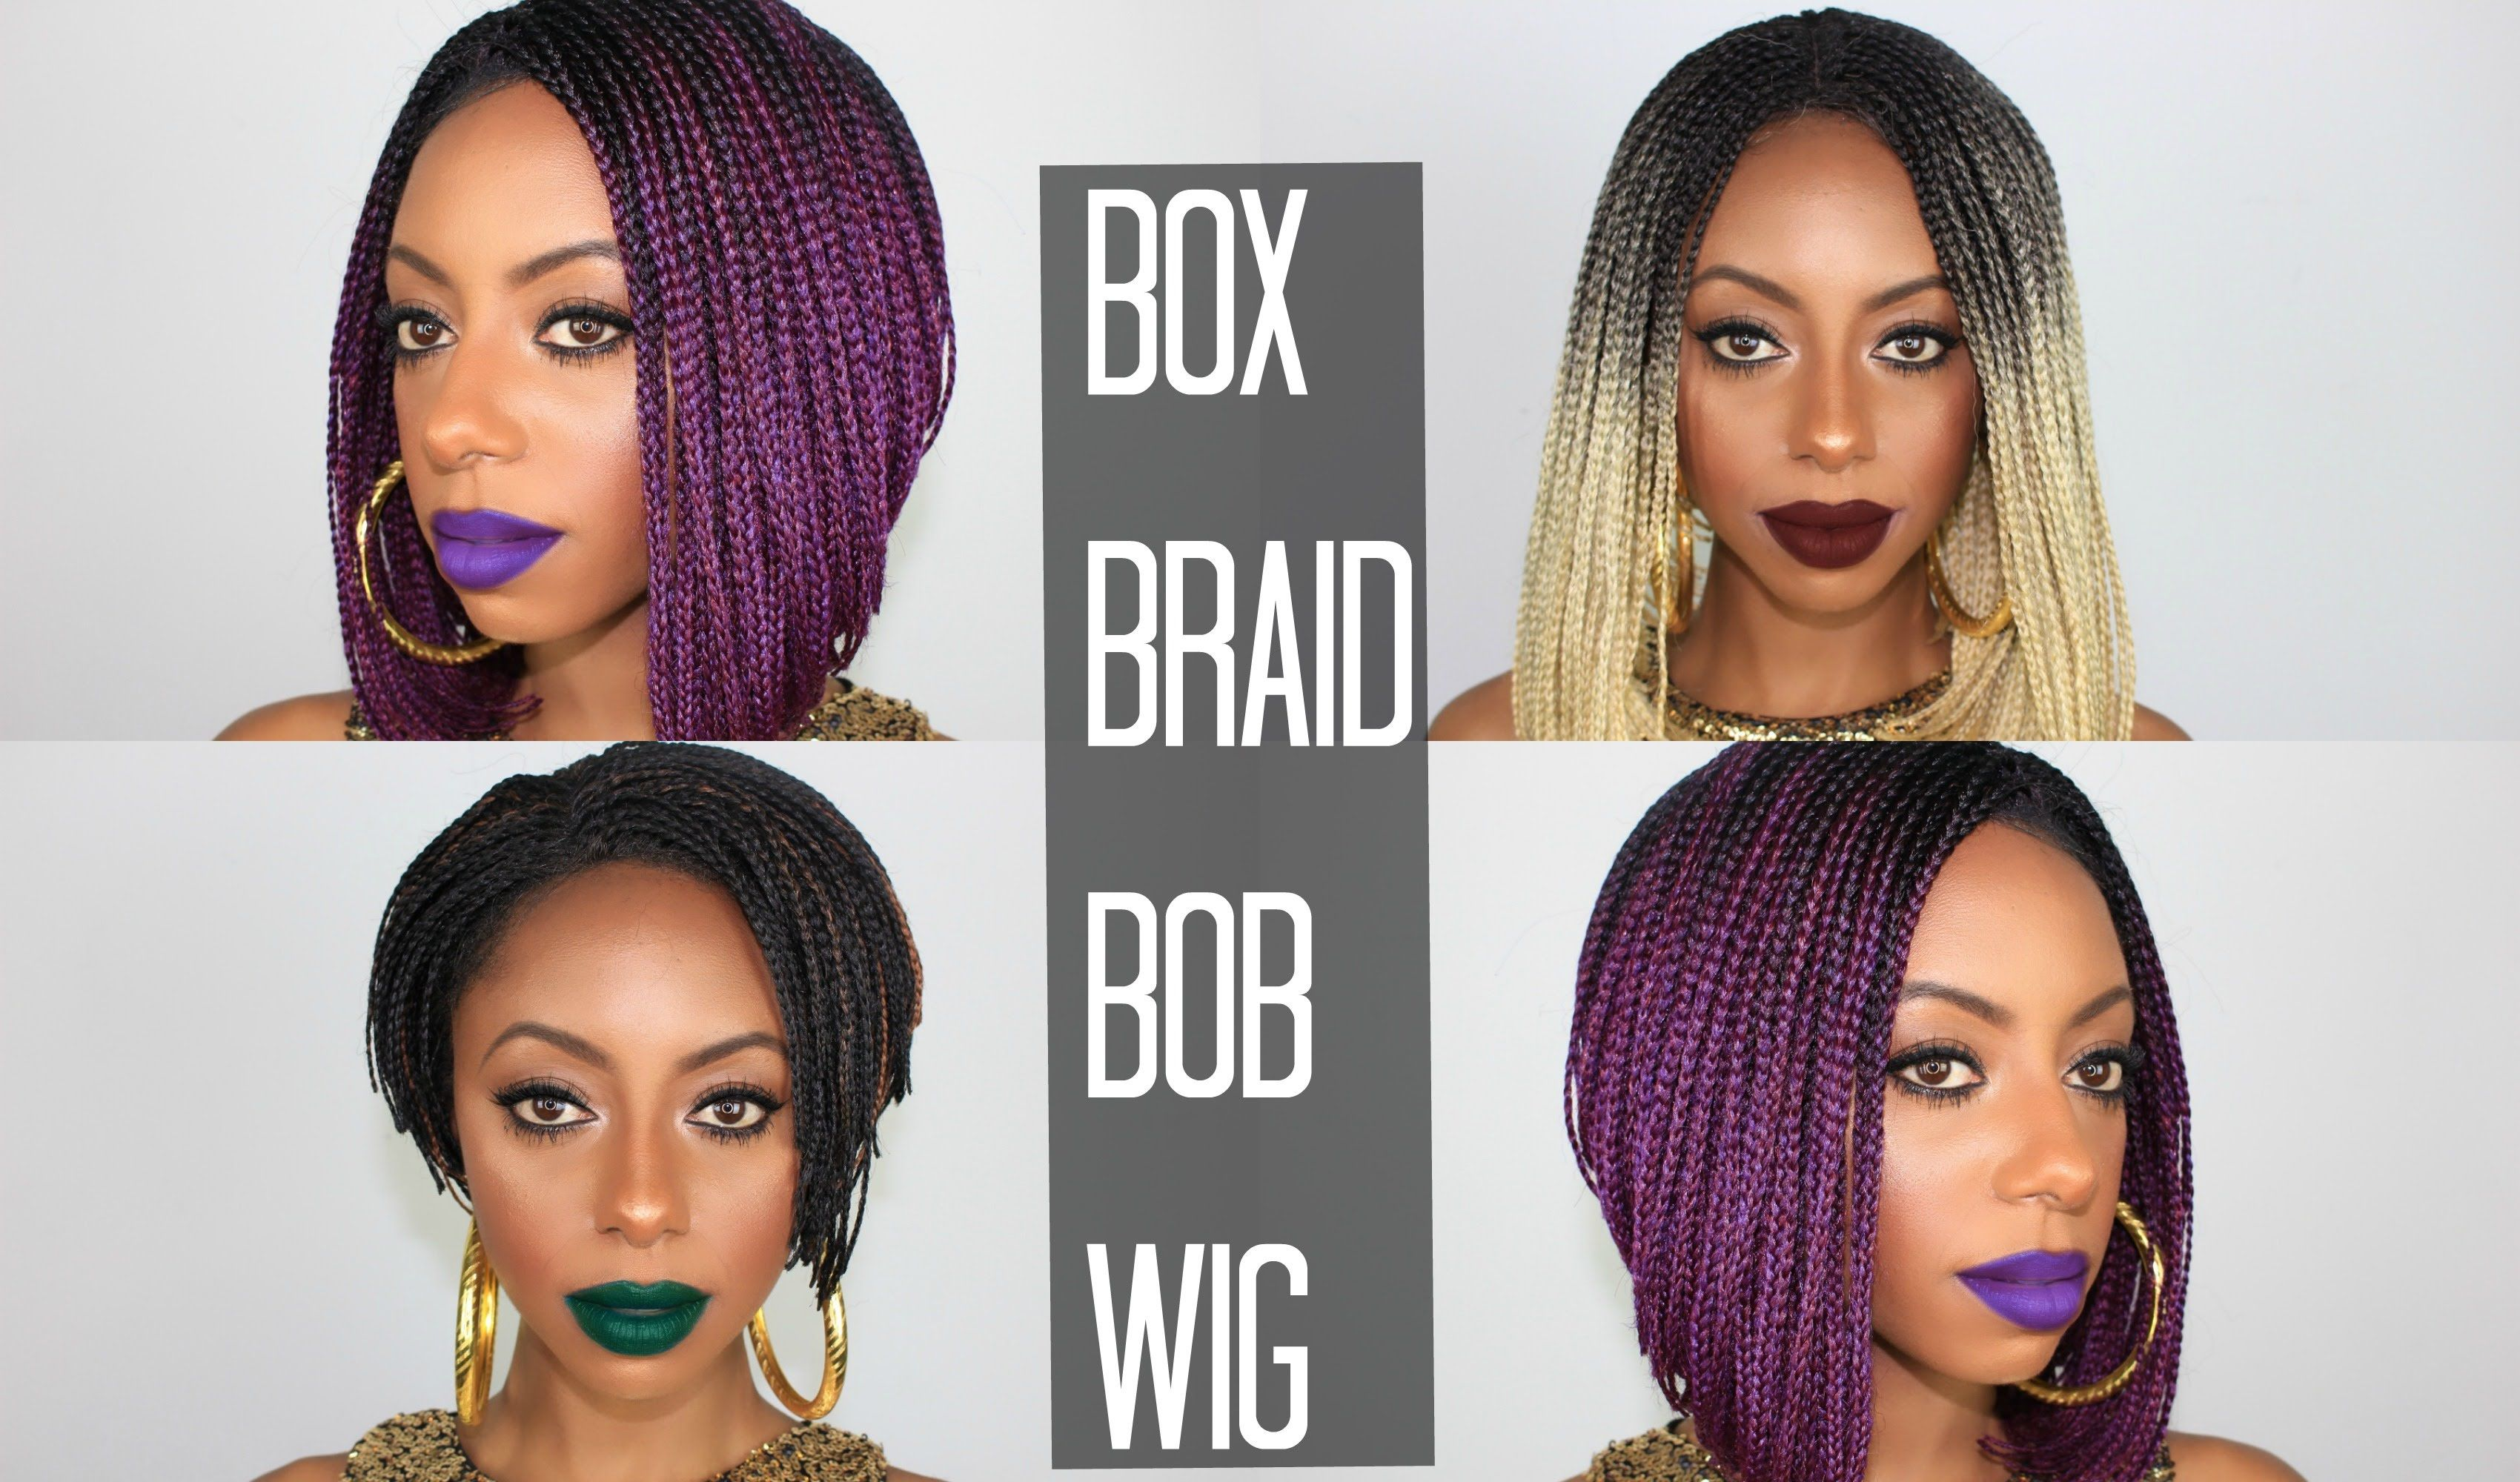 Open Me For Details Natural Looking Box Braid Wig Sis Lace Bob Hey Y All I Just Received These New Braided Wigs From Elevatestyles This